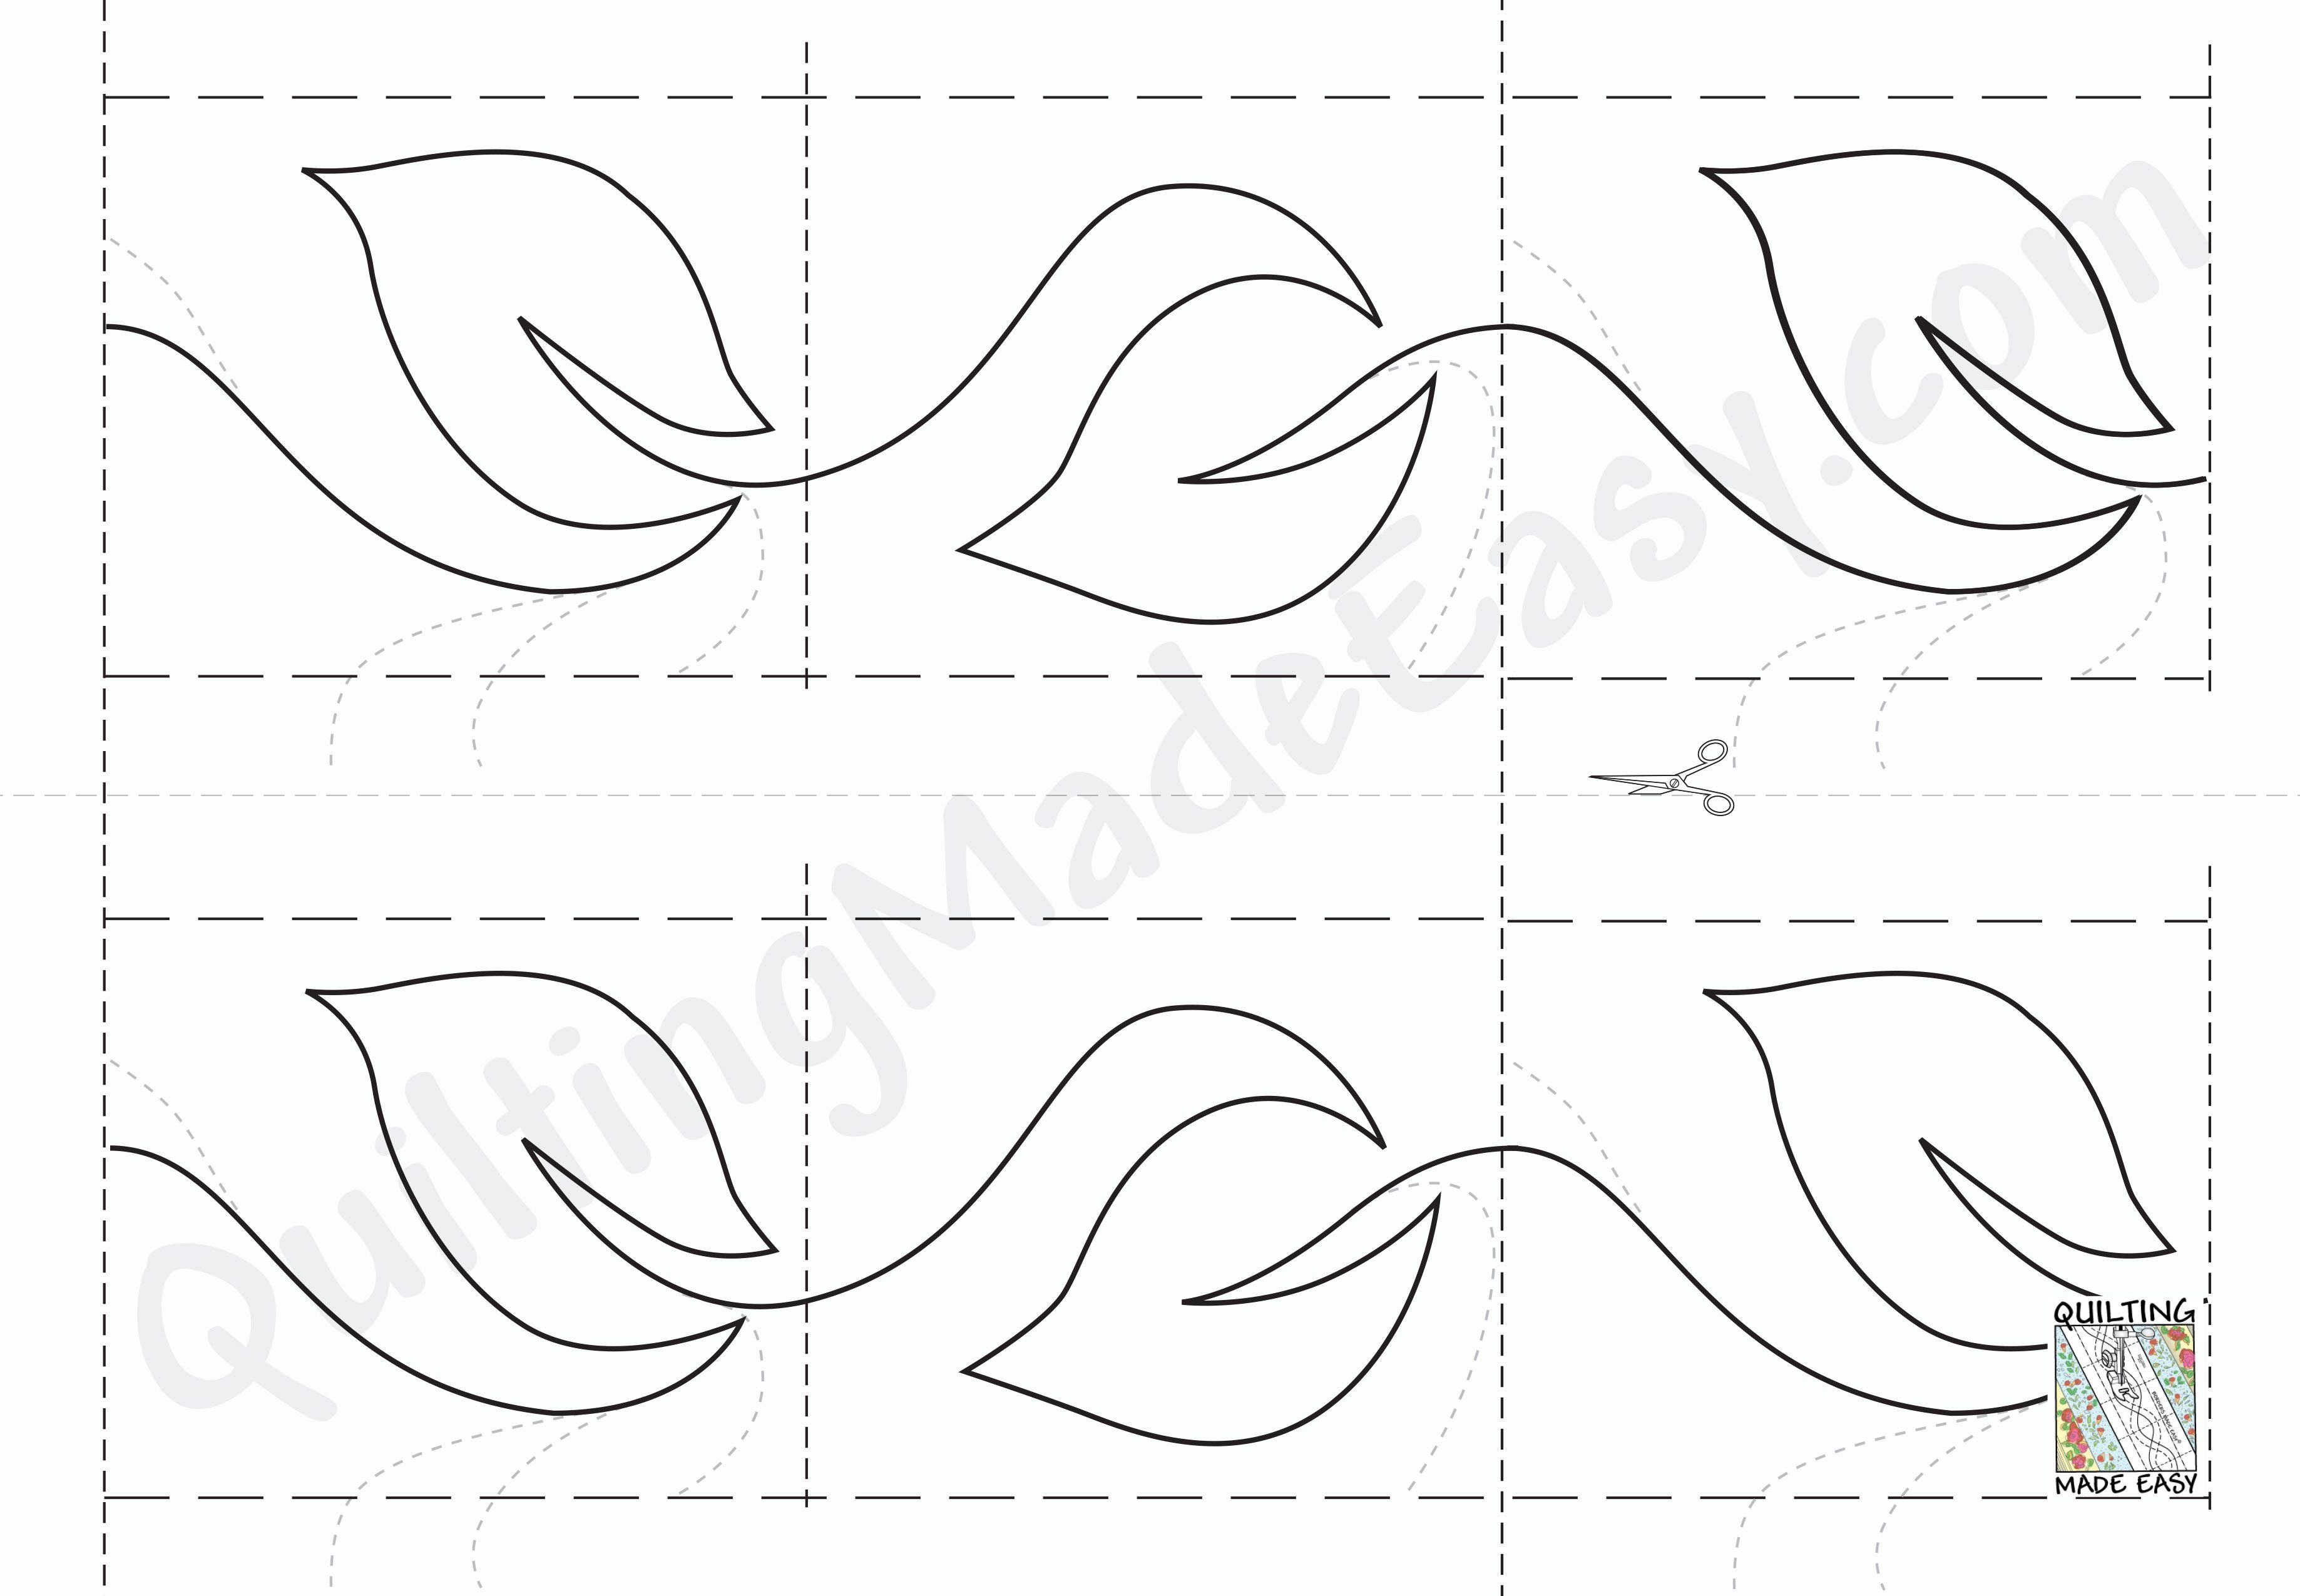 Continuous Line Quilting Patterns Free Downloads Best Decorating